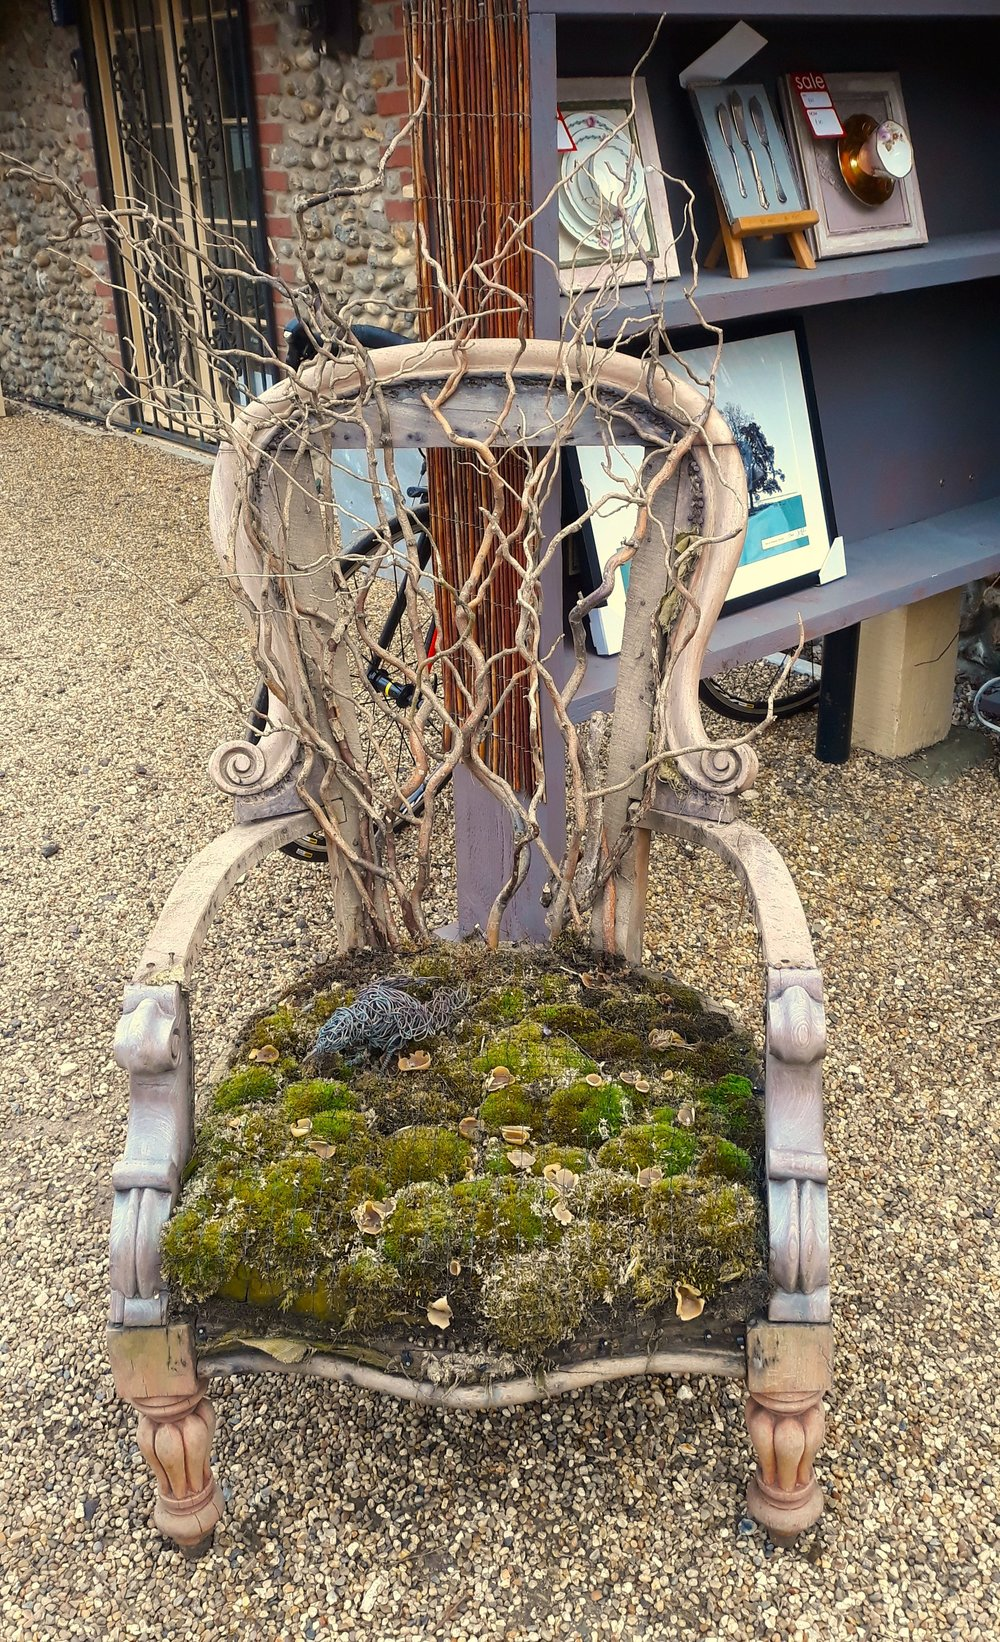 Succulents replace the seat cushion in this chair at Creake Abbey